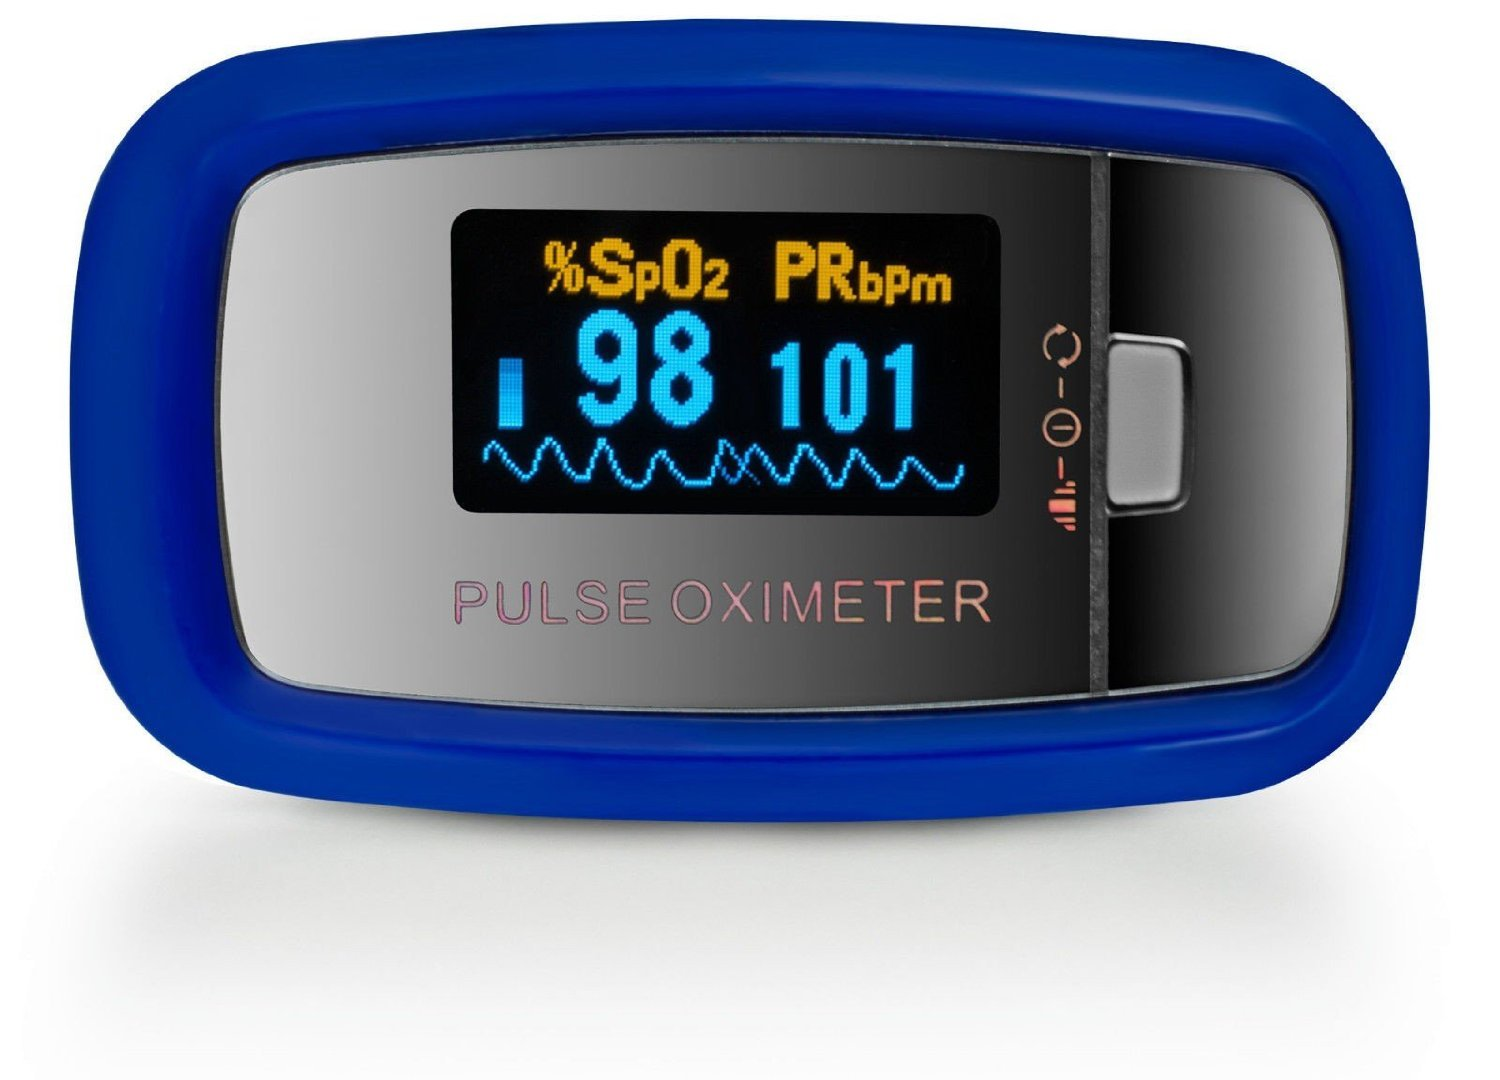 AccuMed CMS-50D1 Finger Pulse Oximeter Blood Oxygen Sensor SpO2 for Sports and Aviation. Portable and Lightweight with LED Display, 2 AAA Batteries, Lanyard and Travel Case Blue